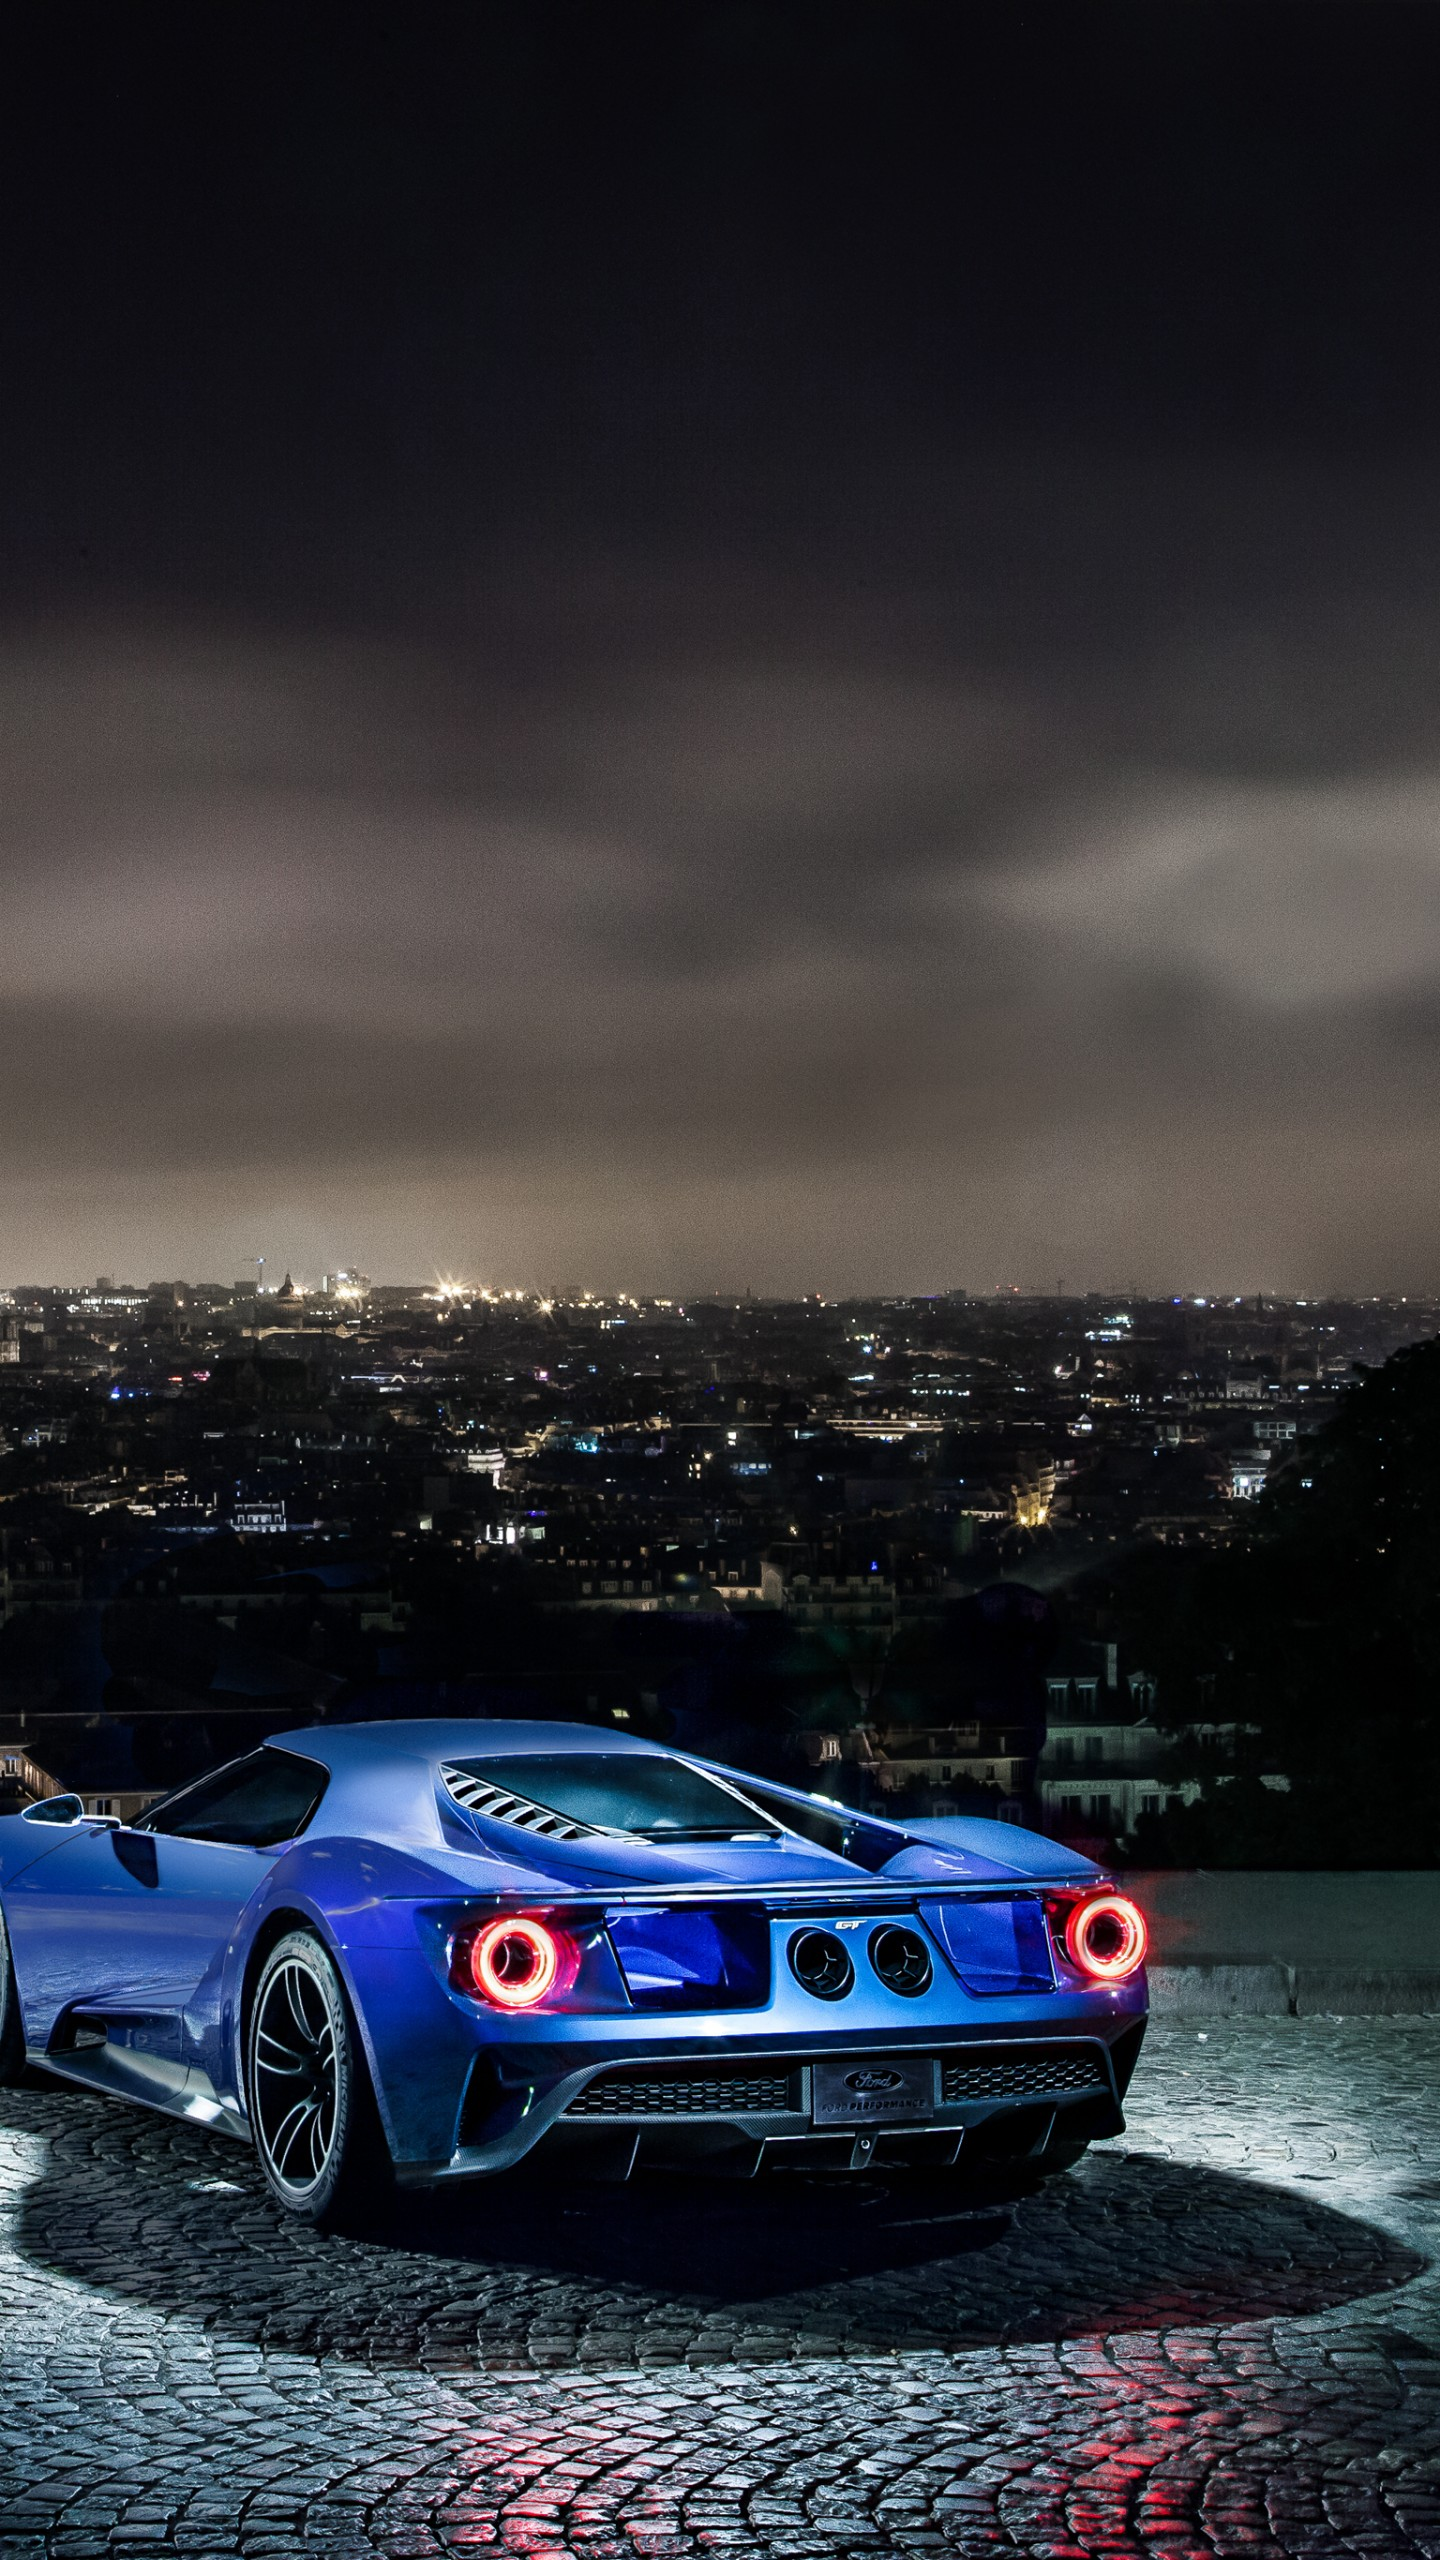 Hd Wallpapers Of Images With Quotes Wallpaper Ford Gt Supercar Concept Blue Sports Car